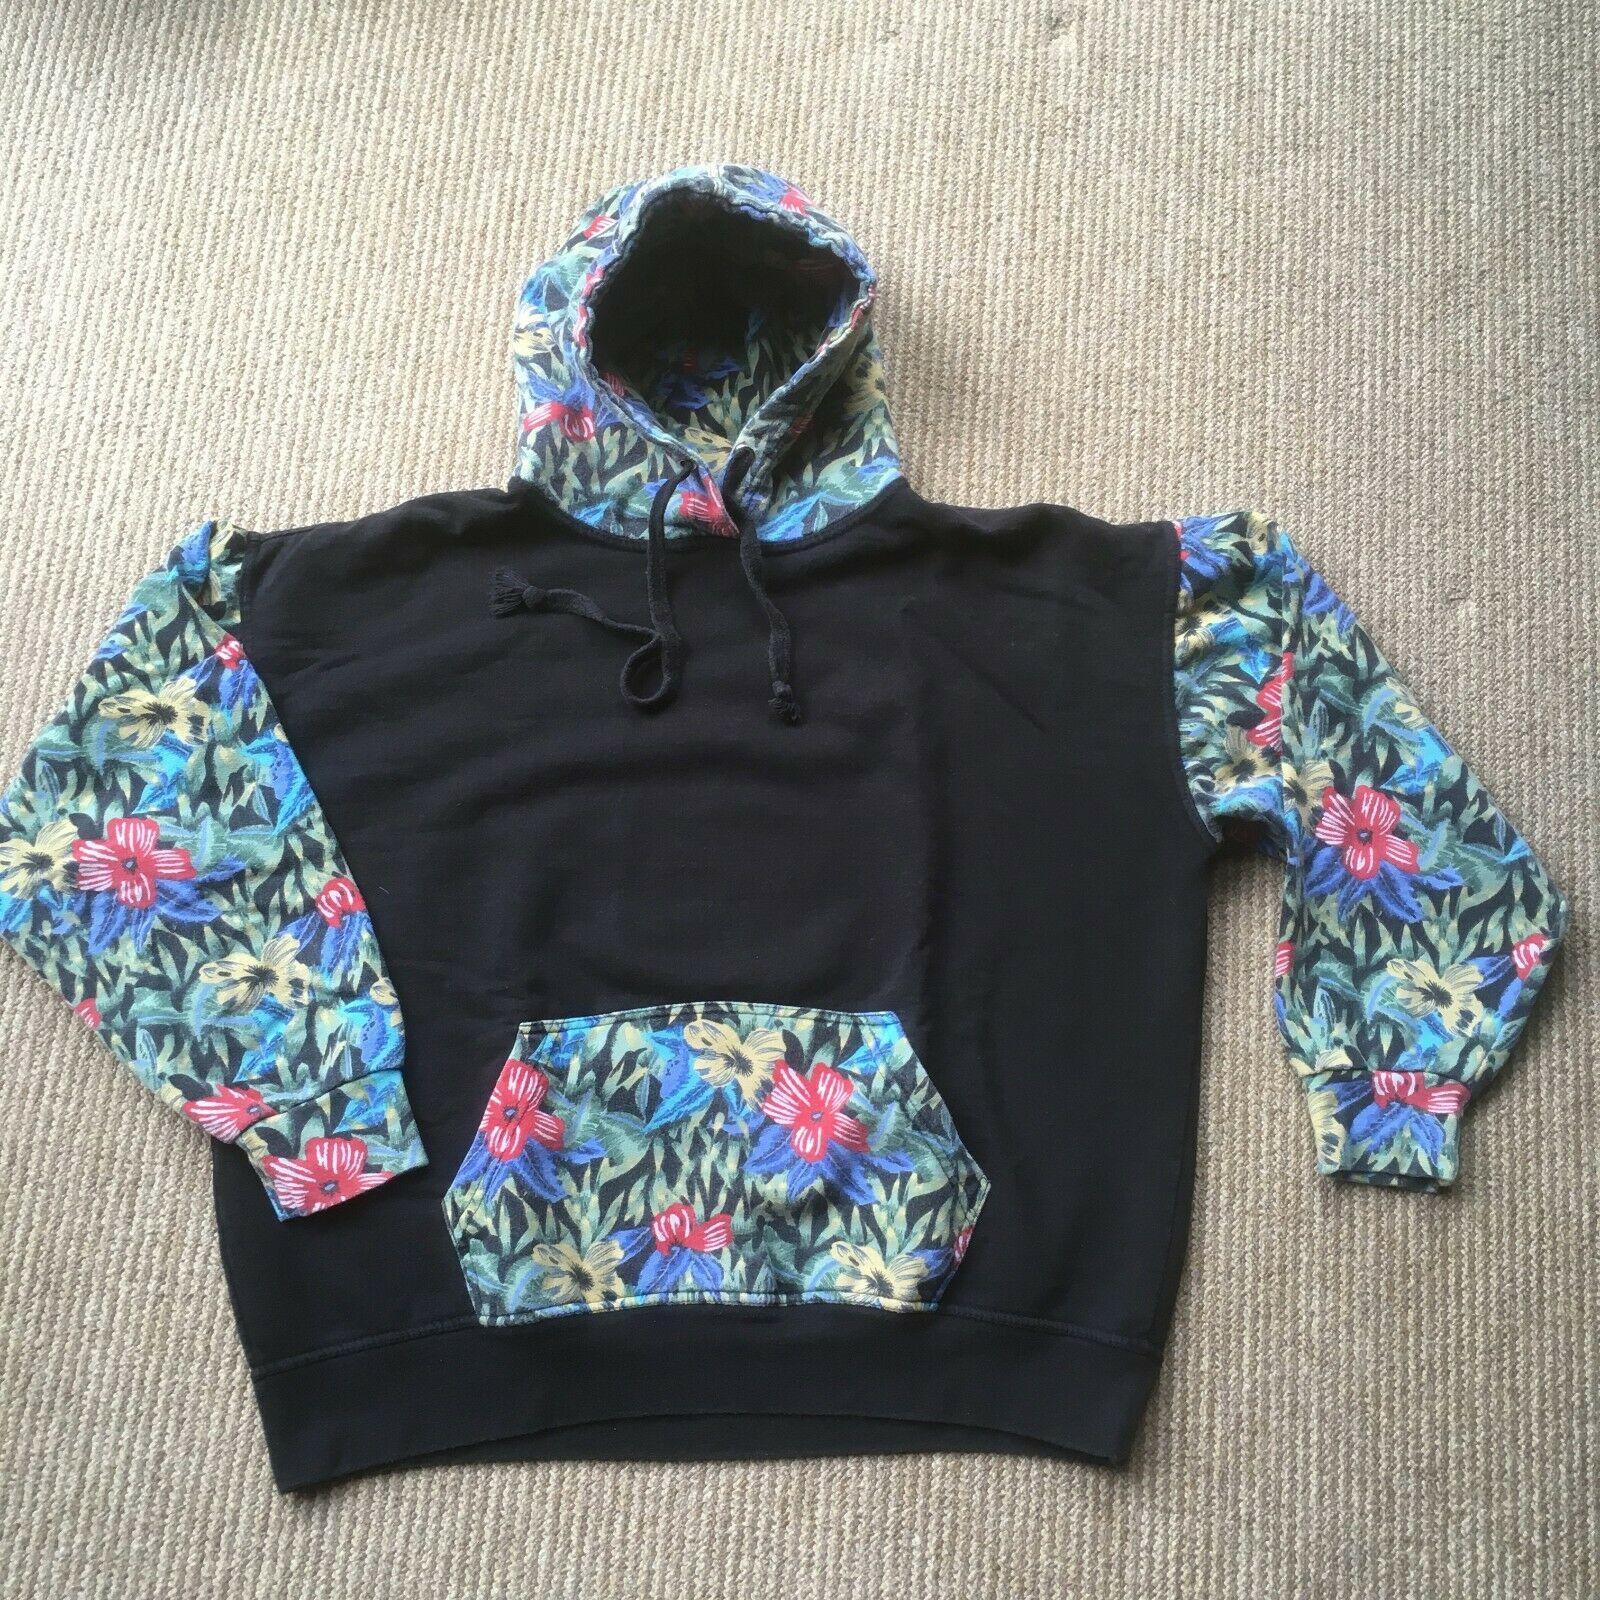 New York Area Code 212 Hoodie. L. Tropical pattern. Center Pocket. Skater Look